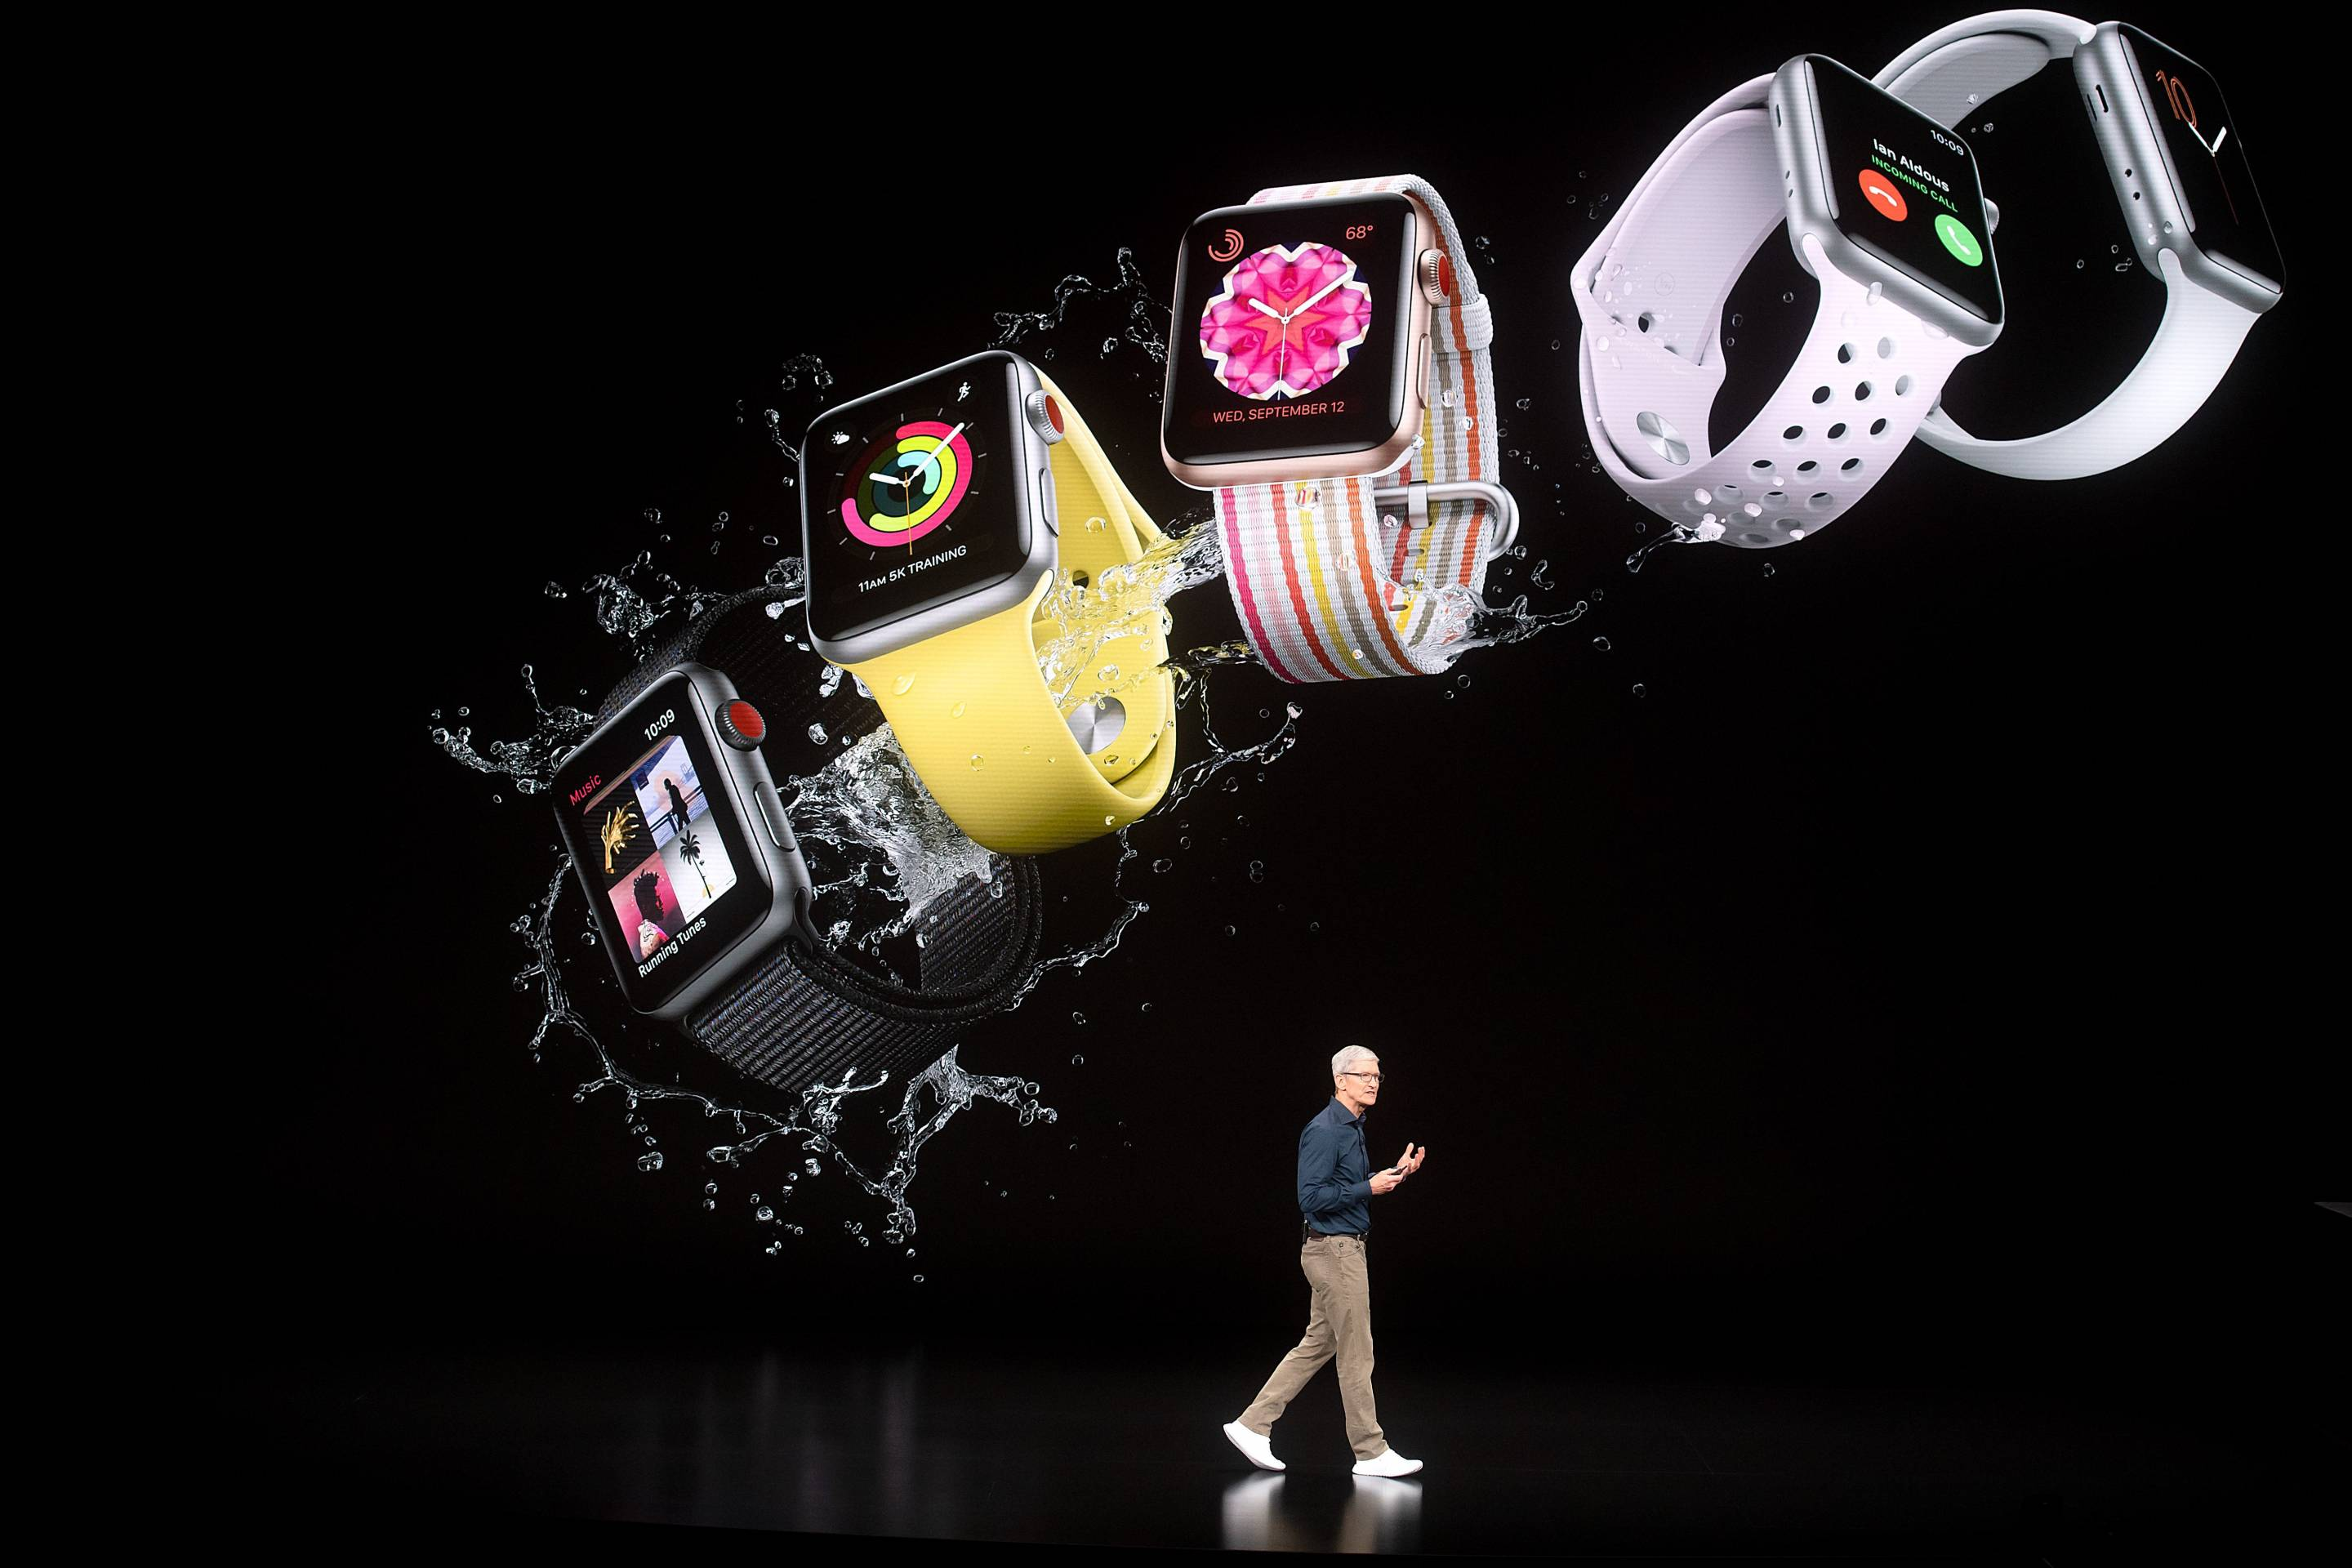 Tim Cook and the Apple Watch